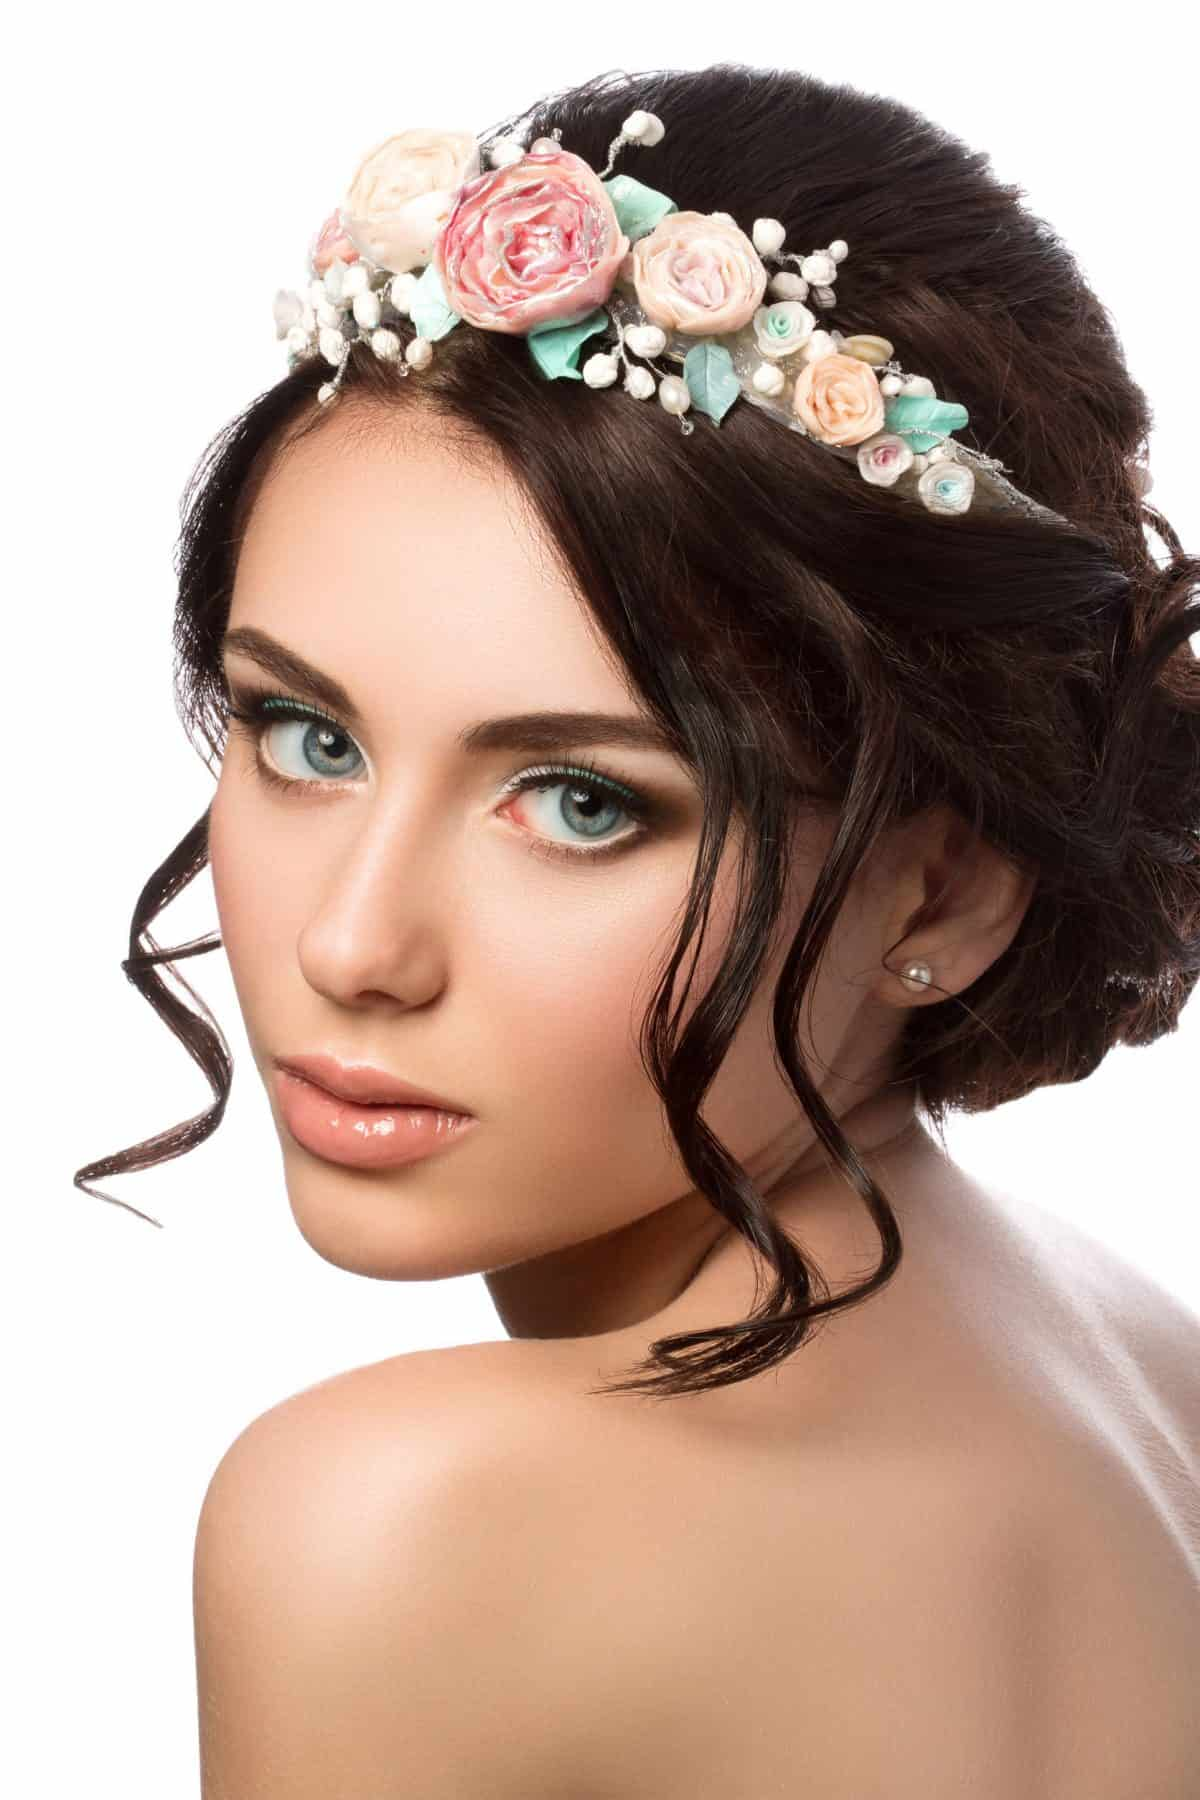 bridal hair. portrait of young beautiful bride. wedding coiffure and make-up.